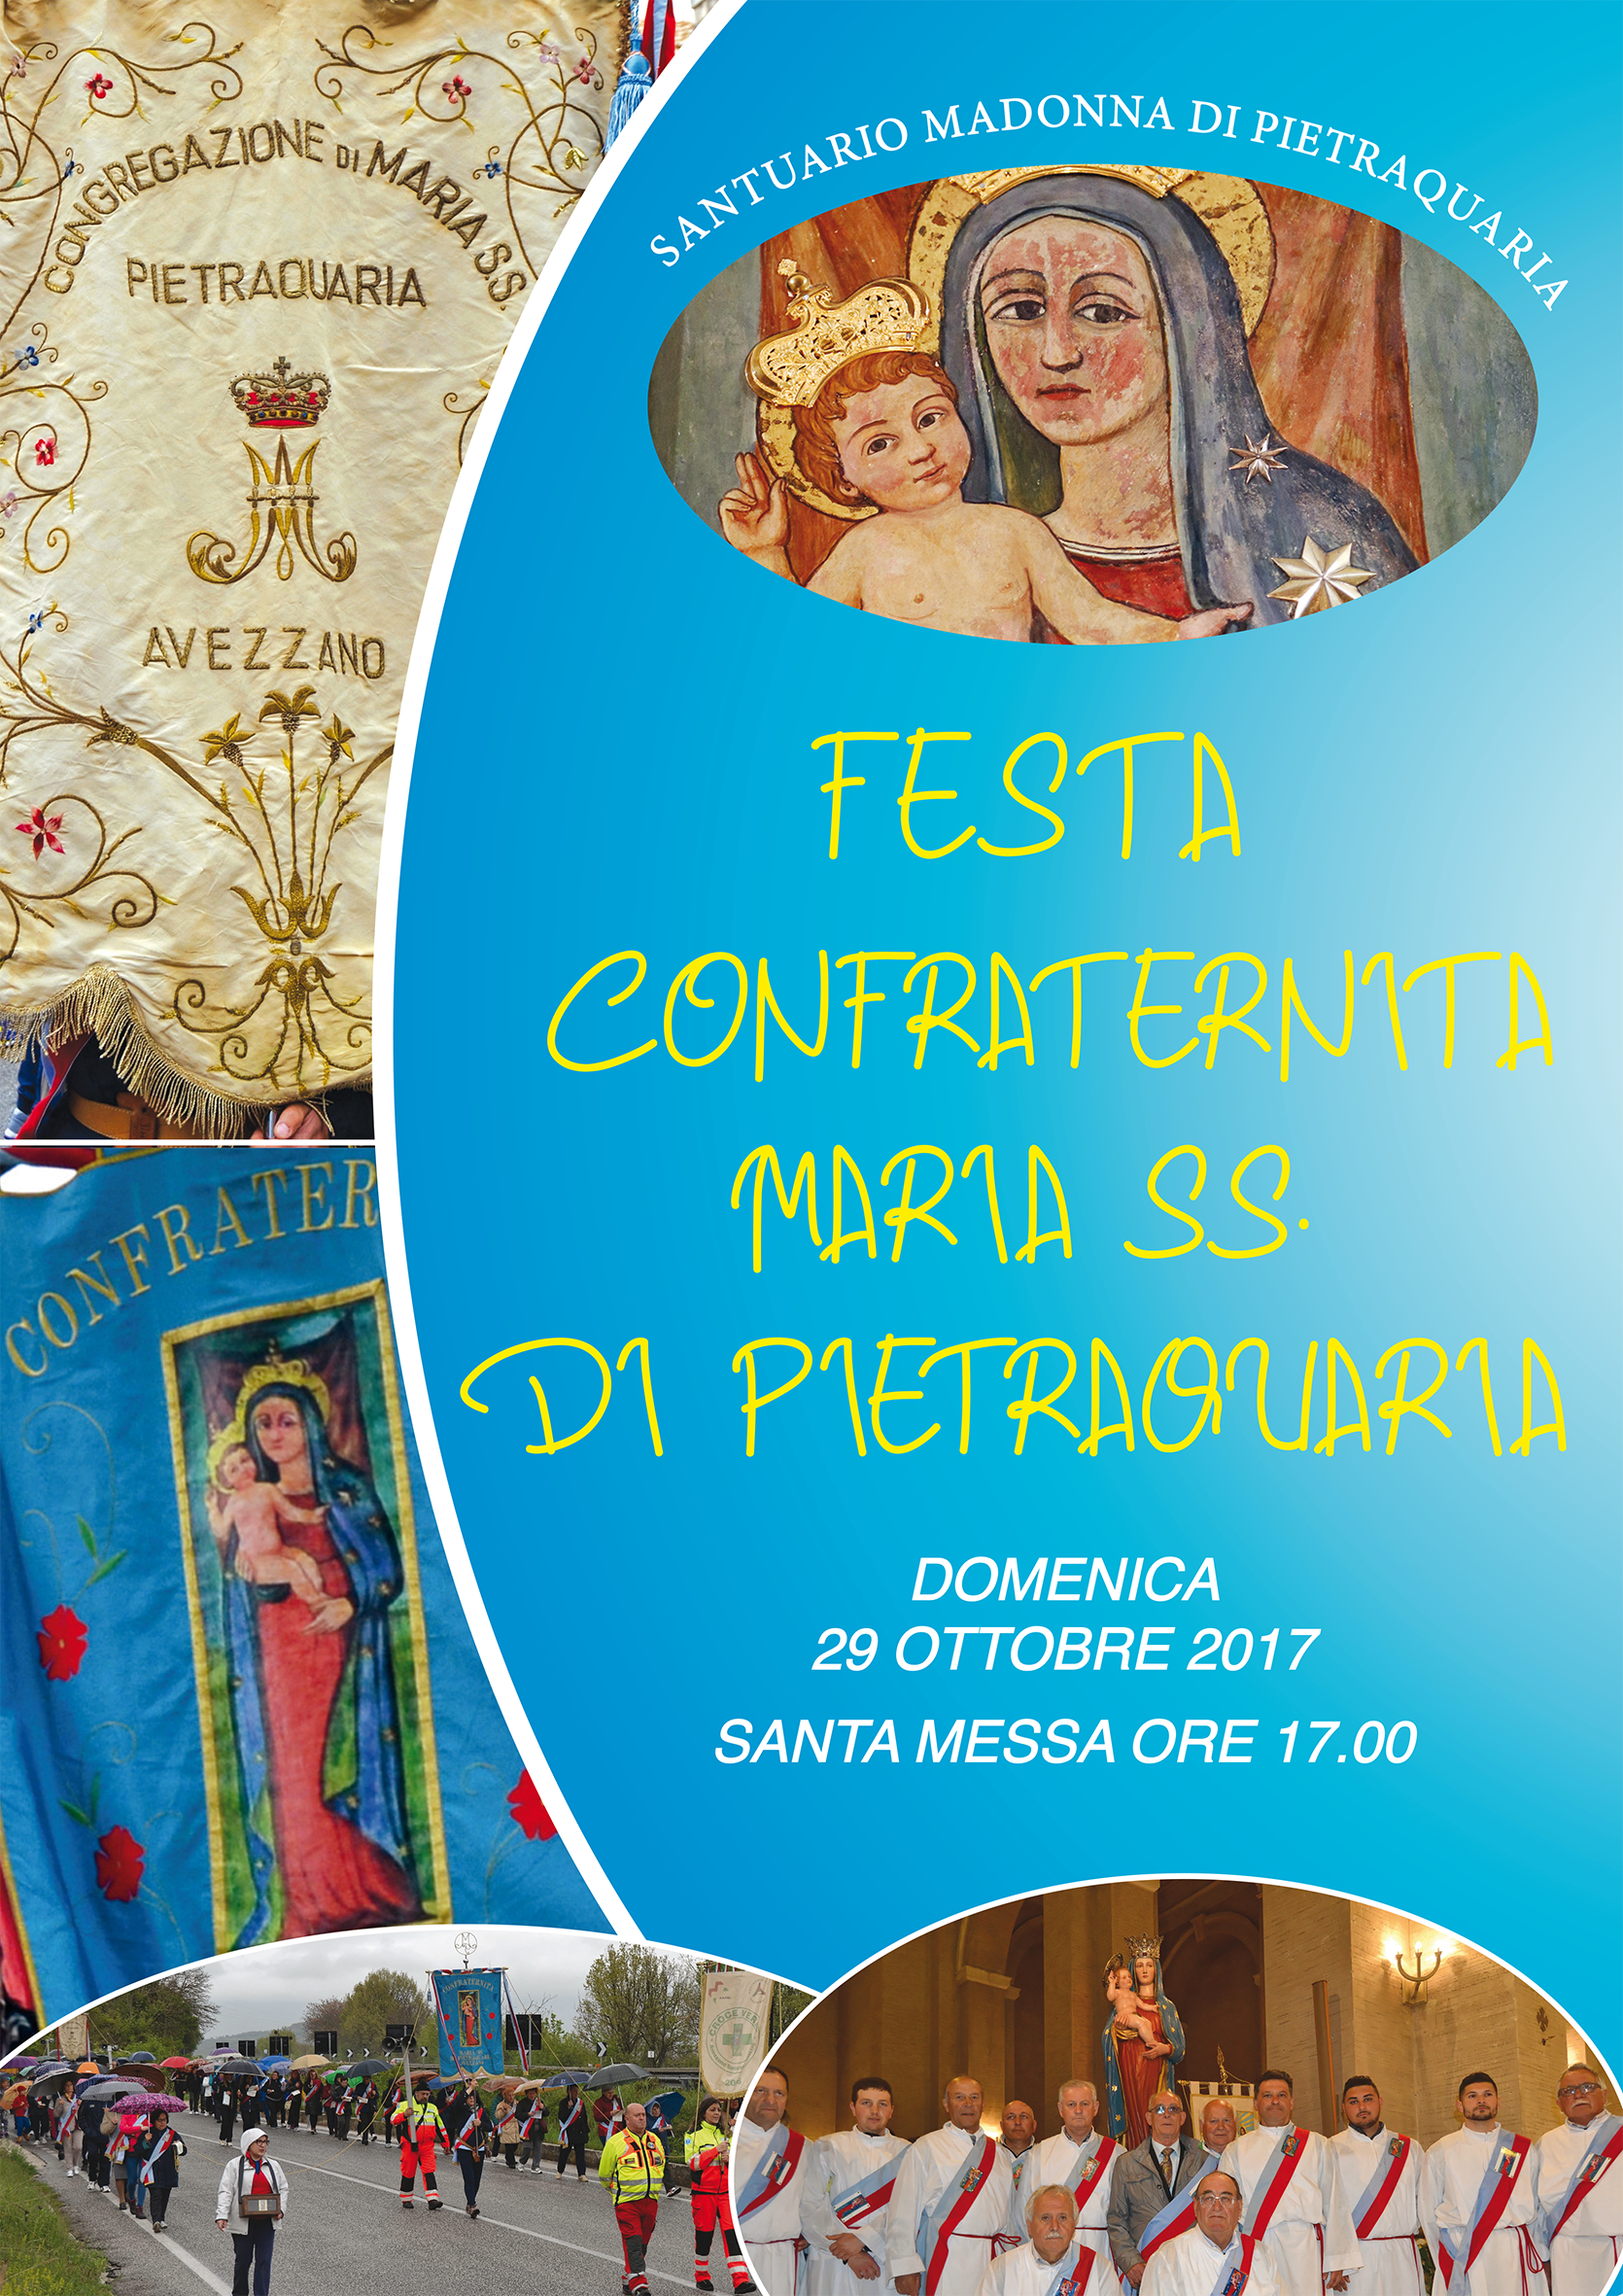 FESTA CONFRATERNITA